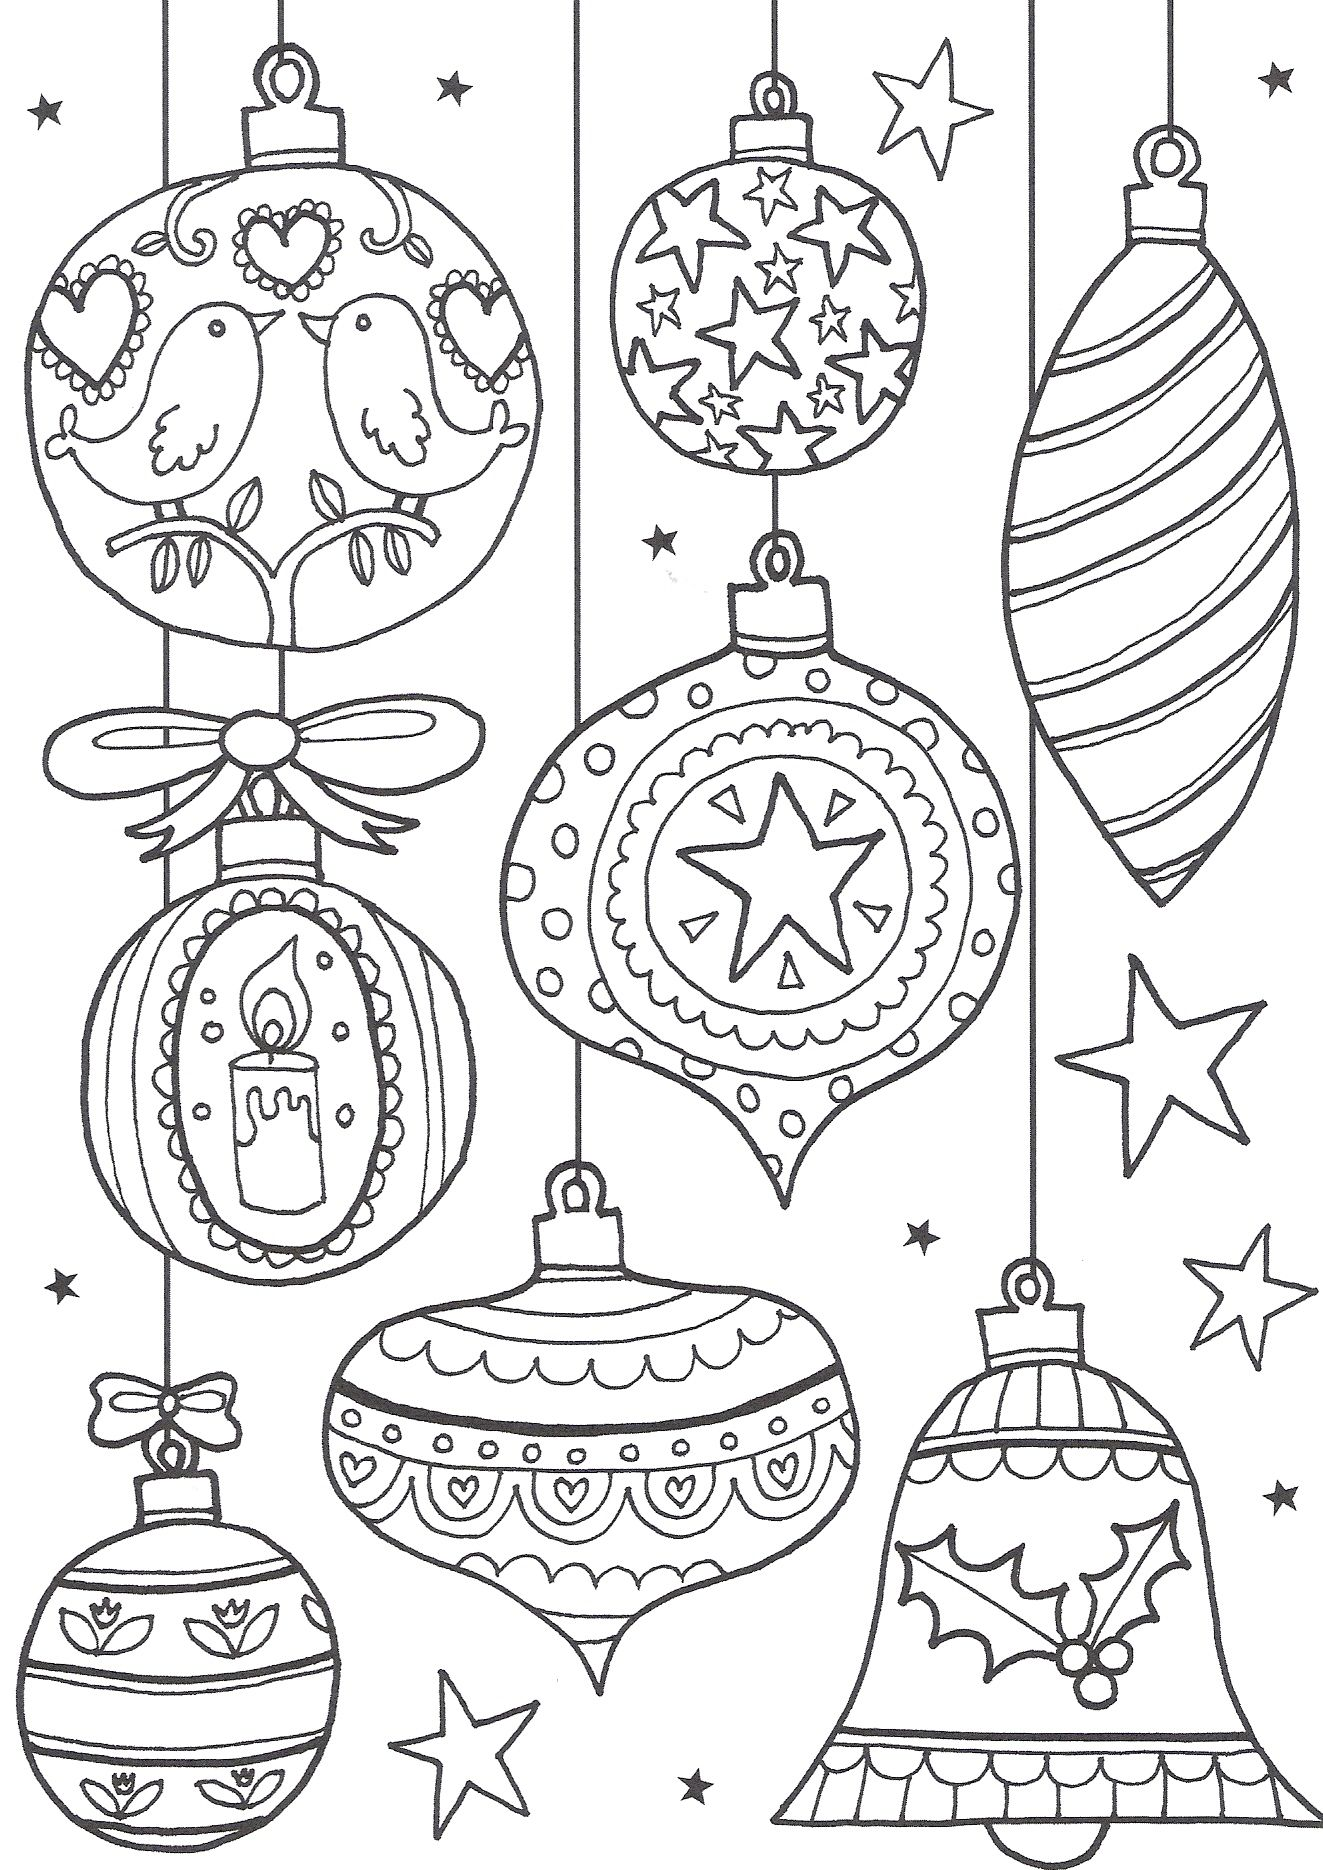 Christmas Coloring Book Online With Free Colouring Pages For Adults The Ultimate Roundup